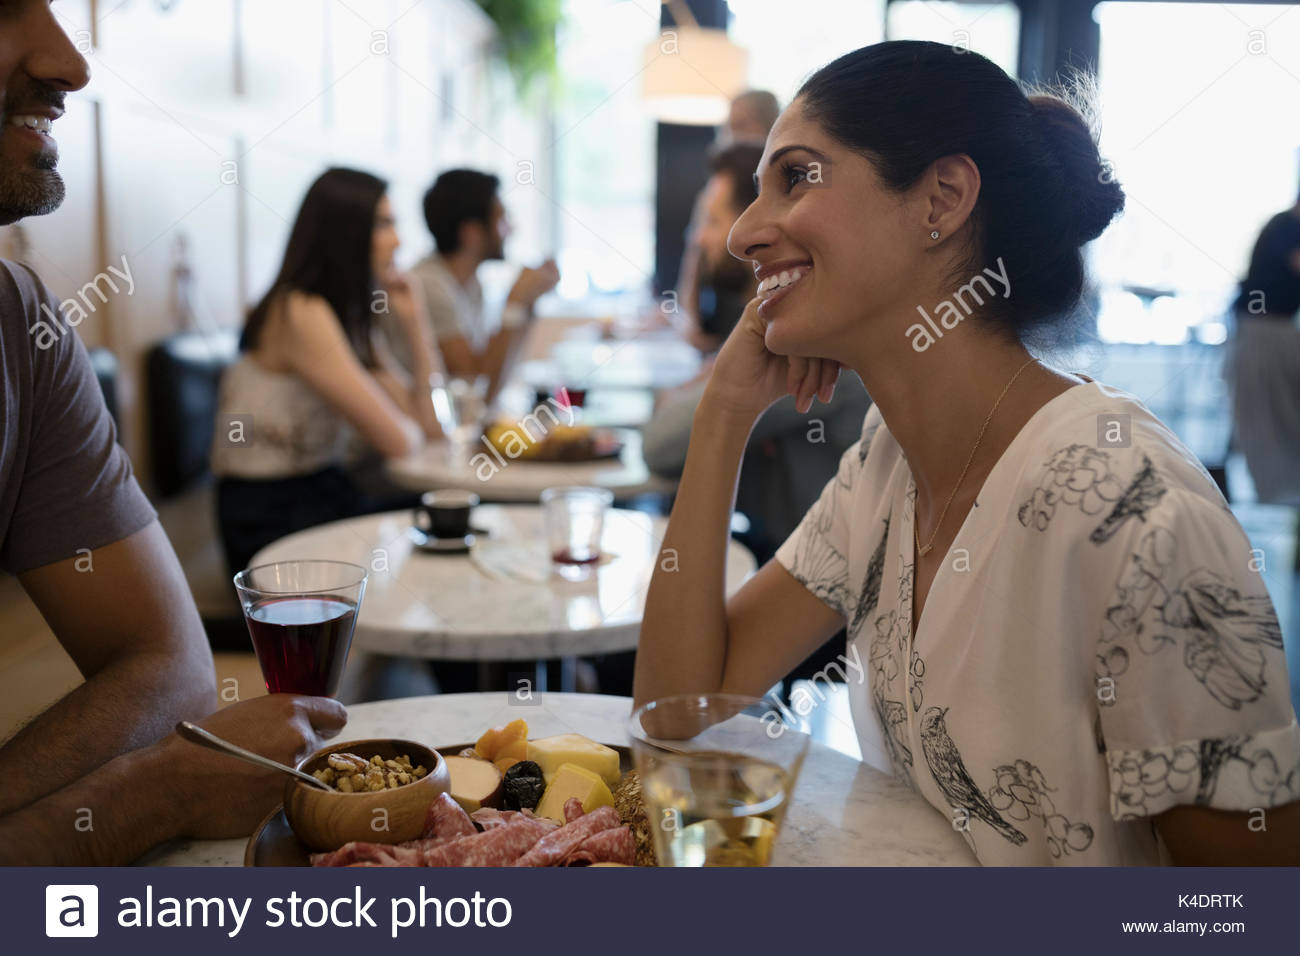 Woman smiling at petit ami, manger et boire du vin à table cafe Photo Stock